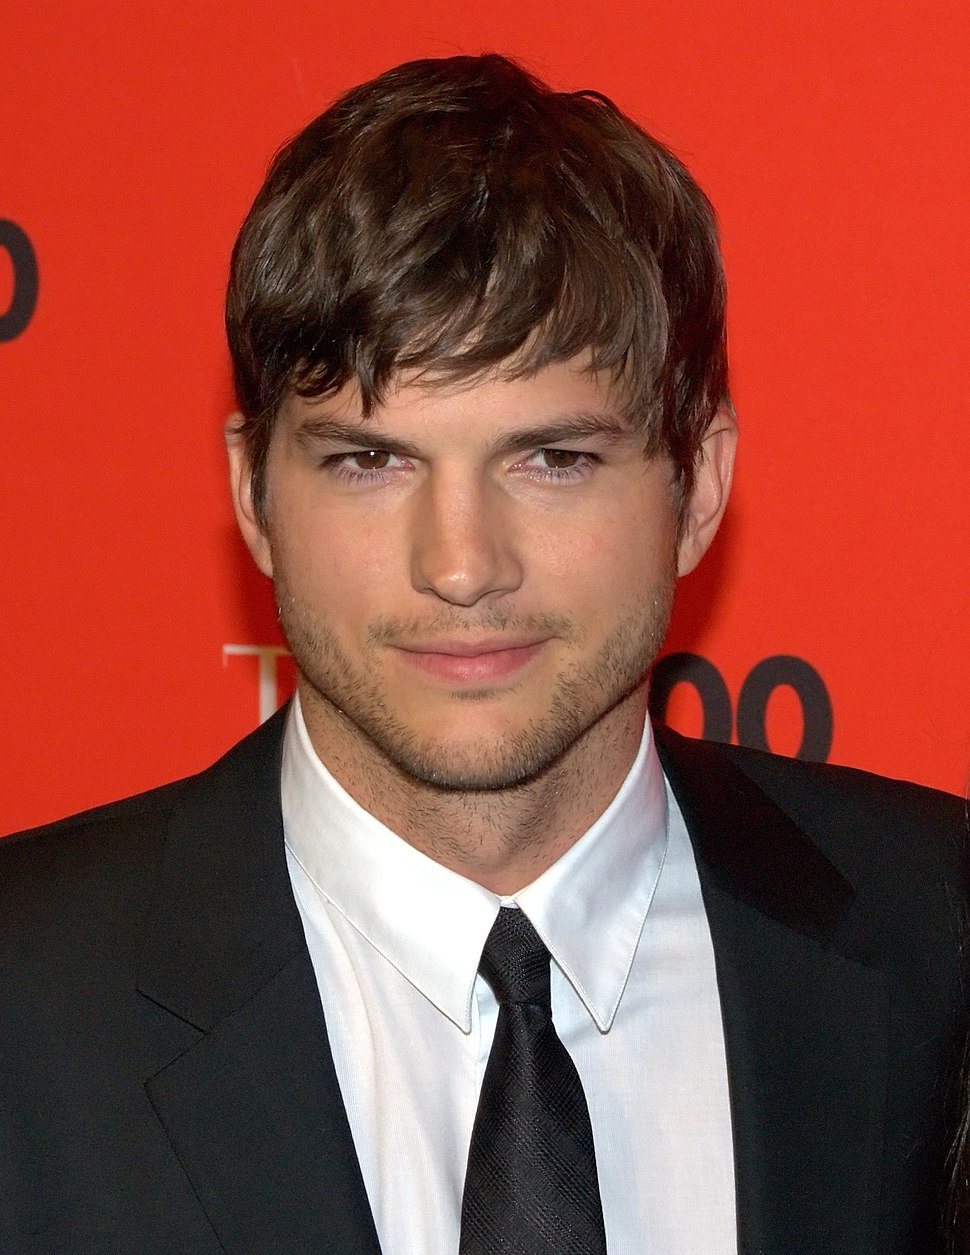 Ashton Kutcher by David Shankbone